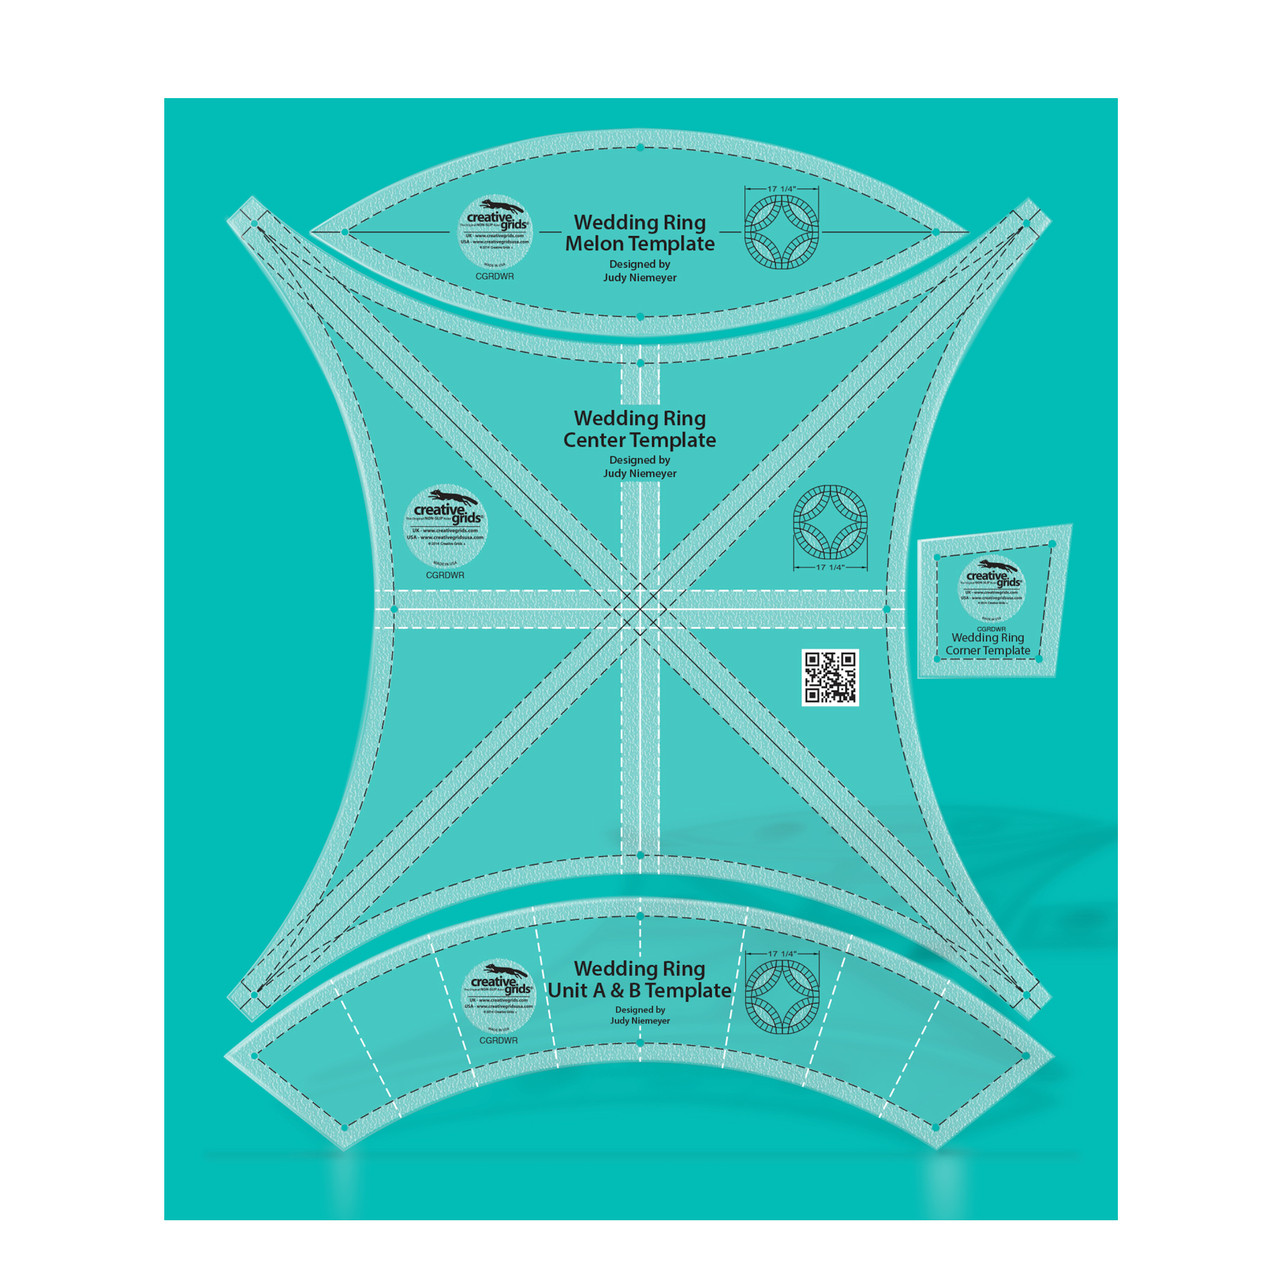 creative grids double wedding ring templates quilt ruler 37 99